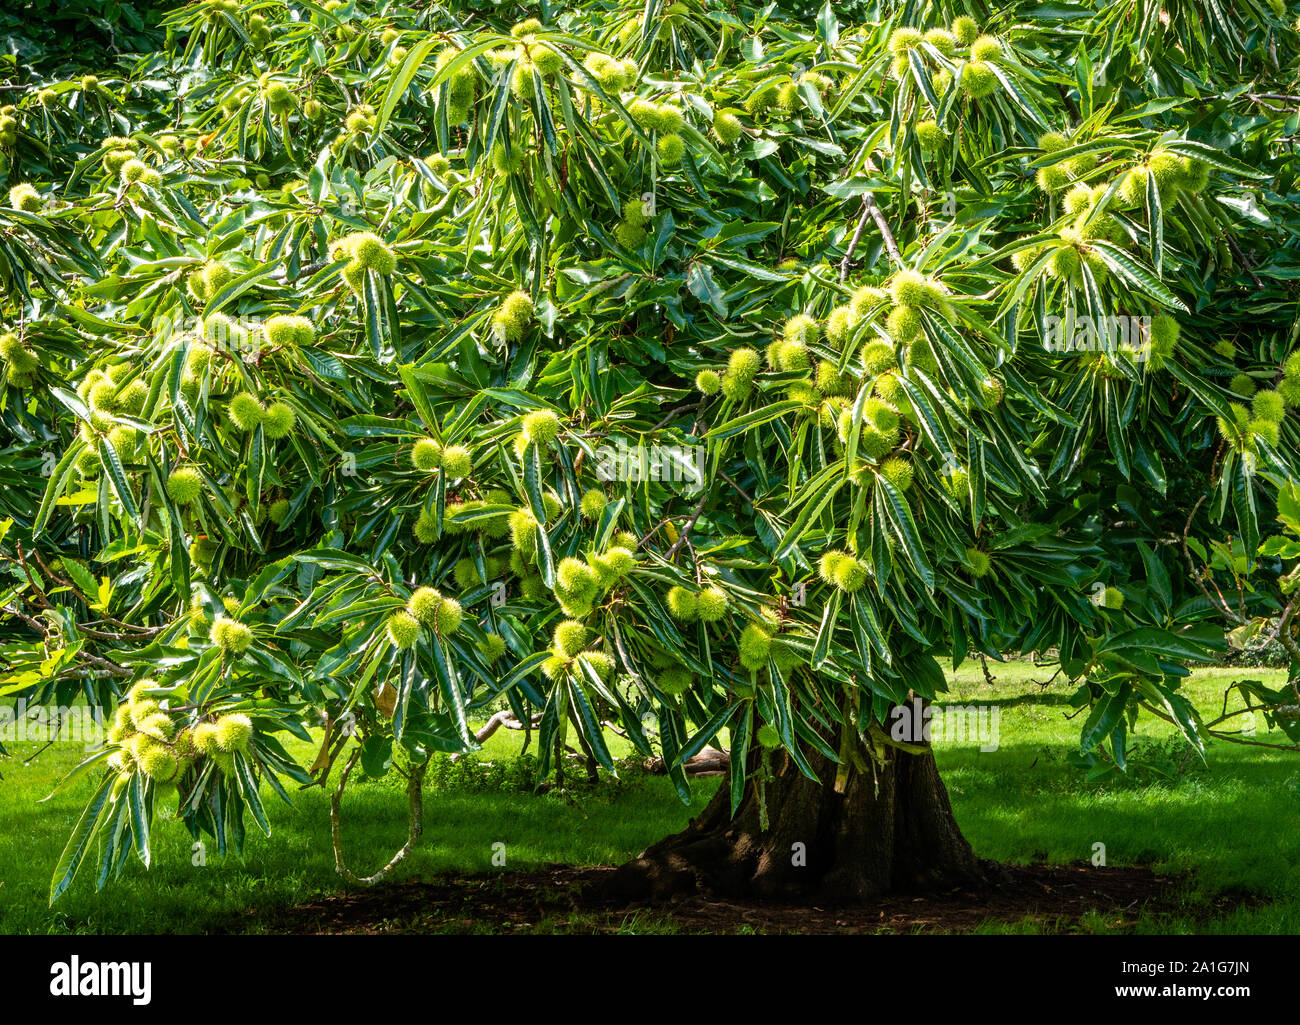 Sweet chestnut Castanea sativa tree in a parkland setting bearing a heavy crop of spiky cupules - Somerset UK Stock Photo